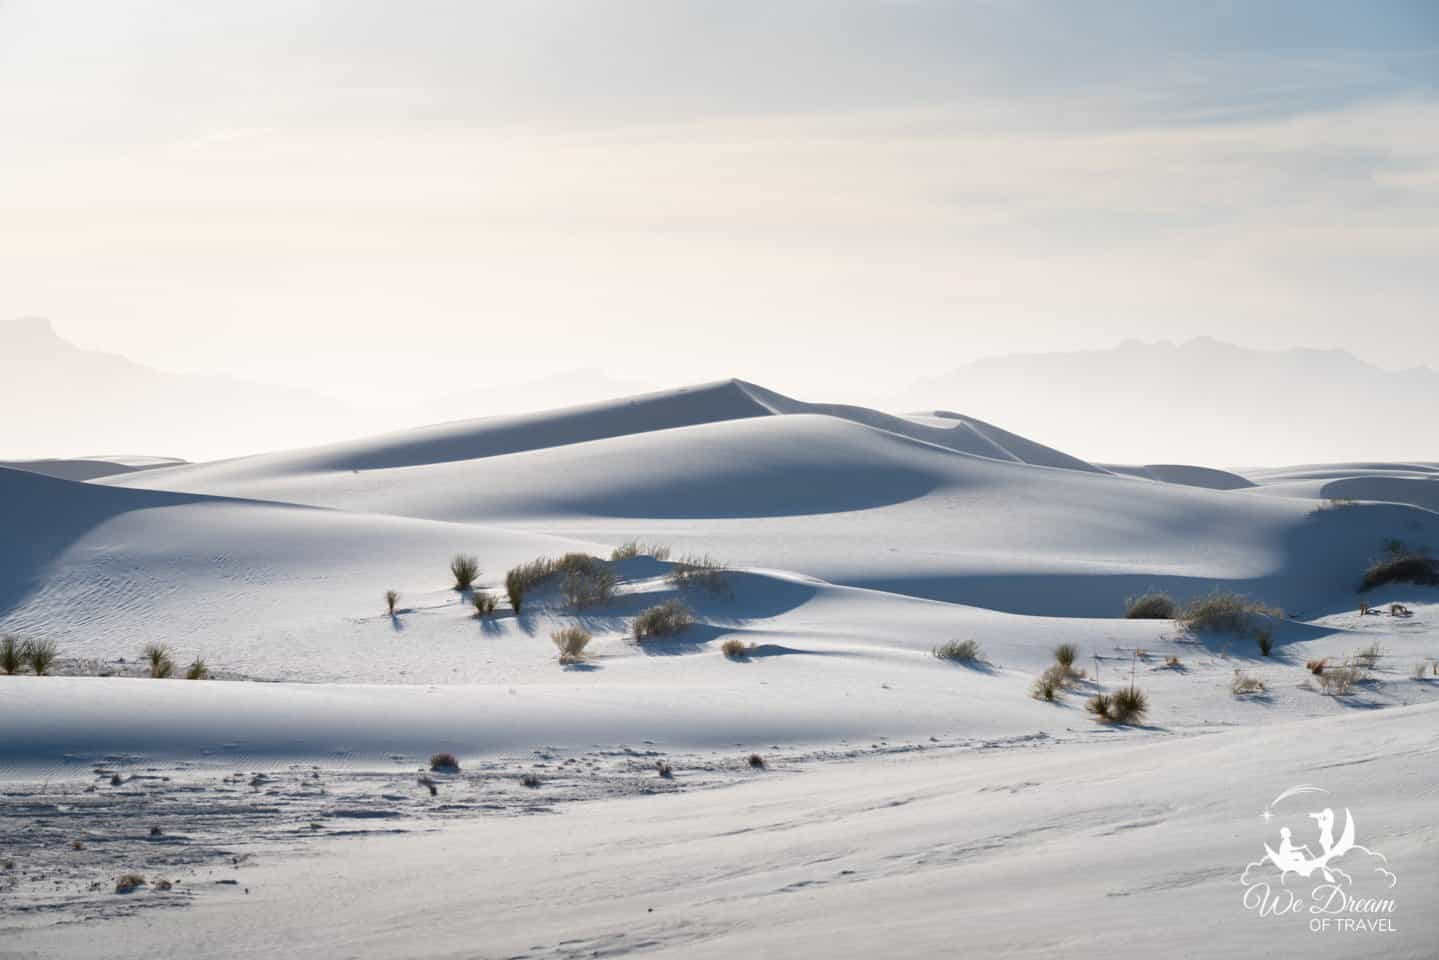 Afternoon light creates contrasting textures on the gypsum sand dunes at White Sands.